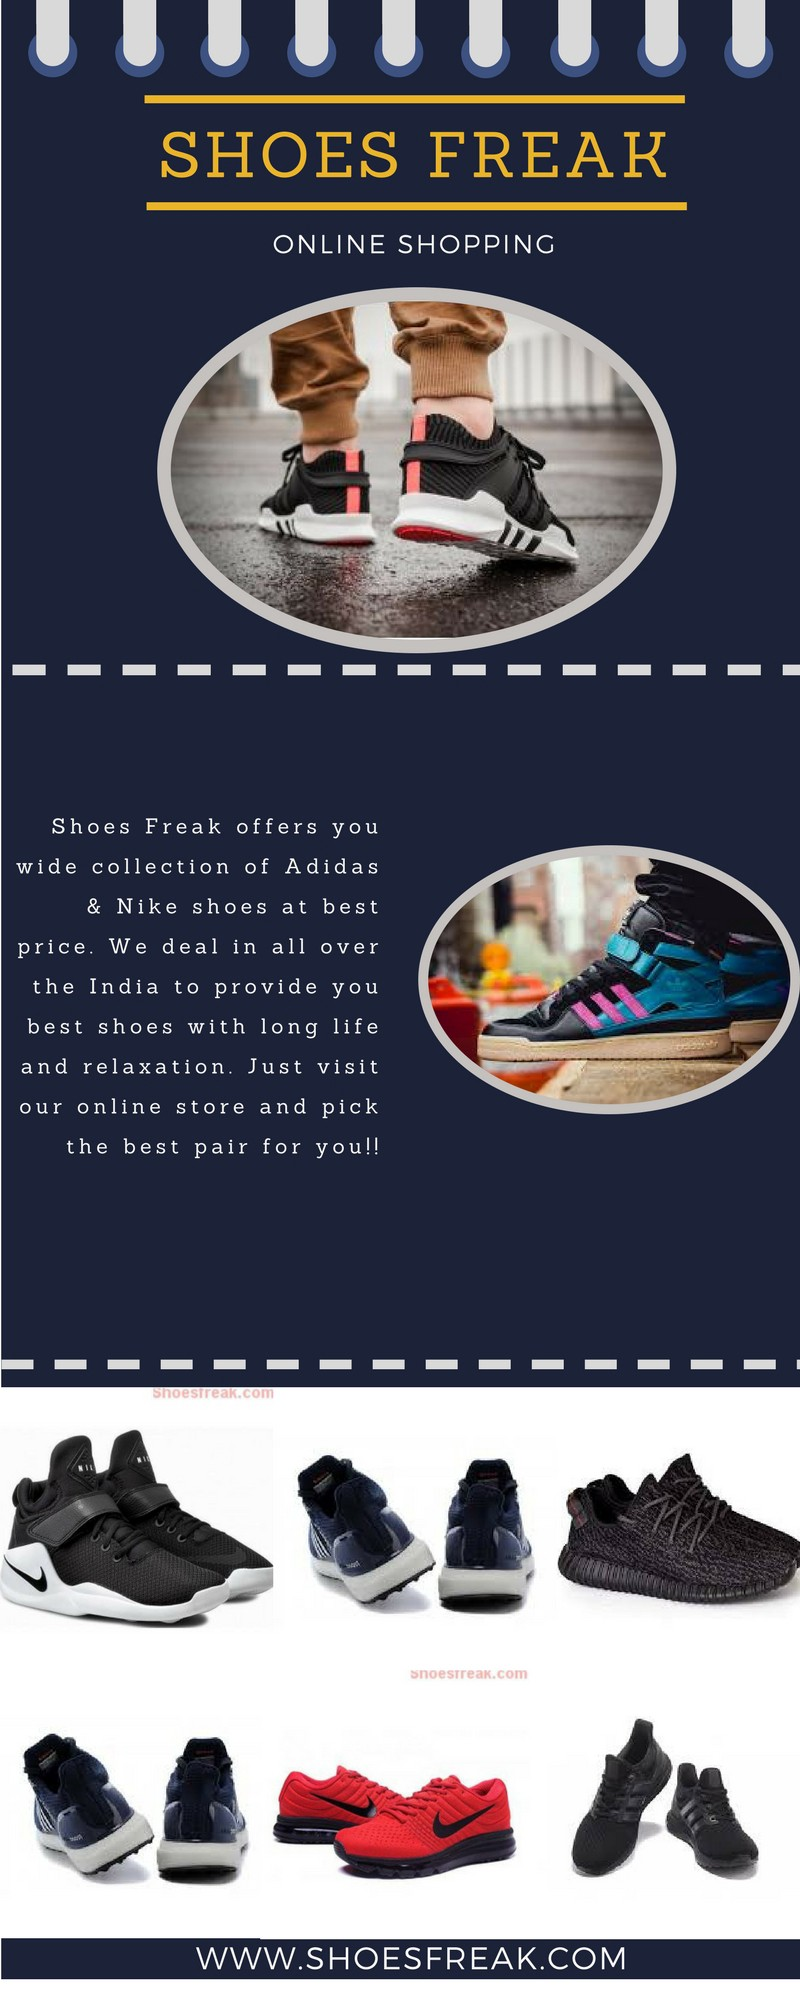 e36599f38ead0 Shoes freak offer you broad collection of Nike Roshe run shoes at valuable  price. This brands best suited for people who loves running.